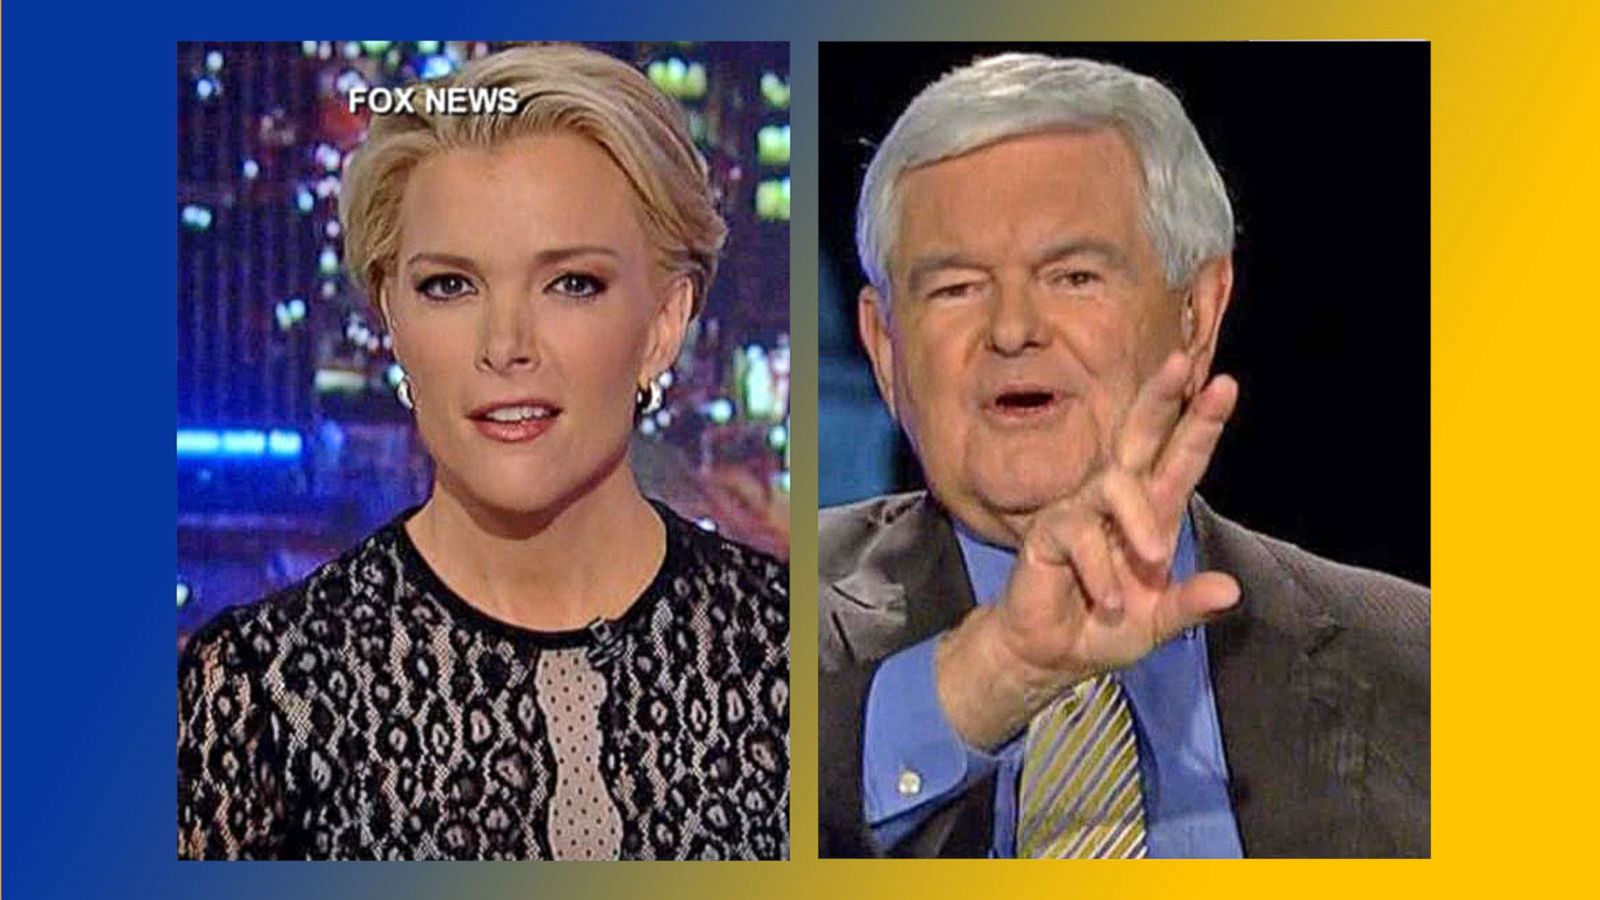 VIDEO: Newt Gingrich in War of Words With Megyn Kelly